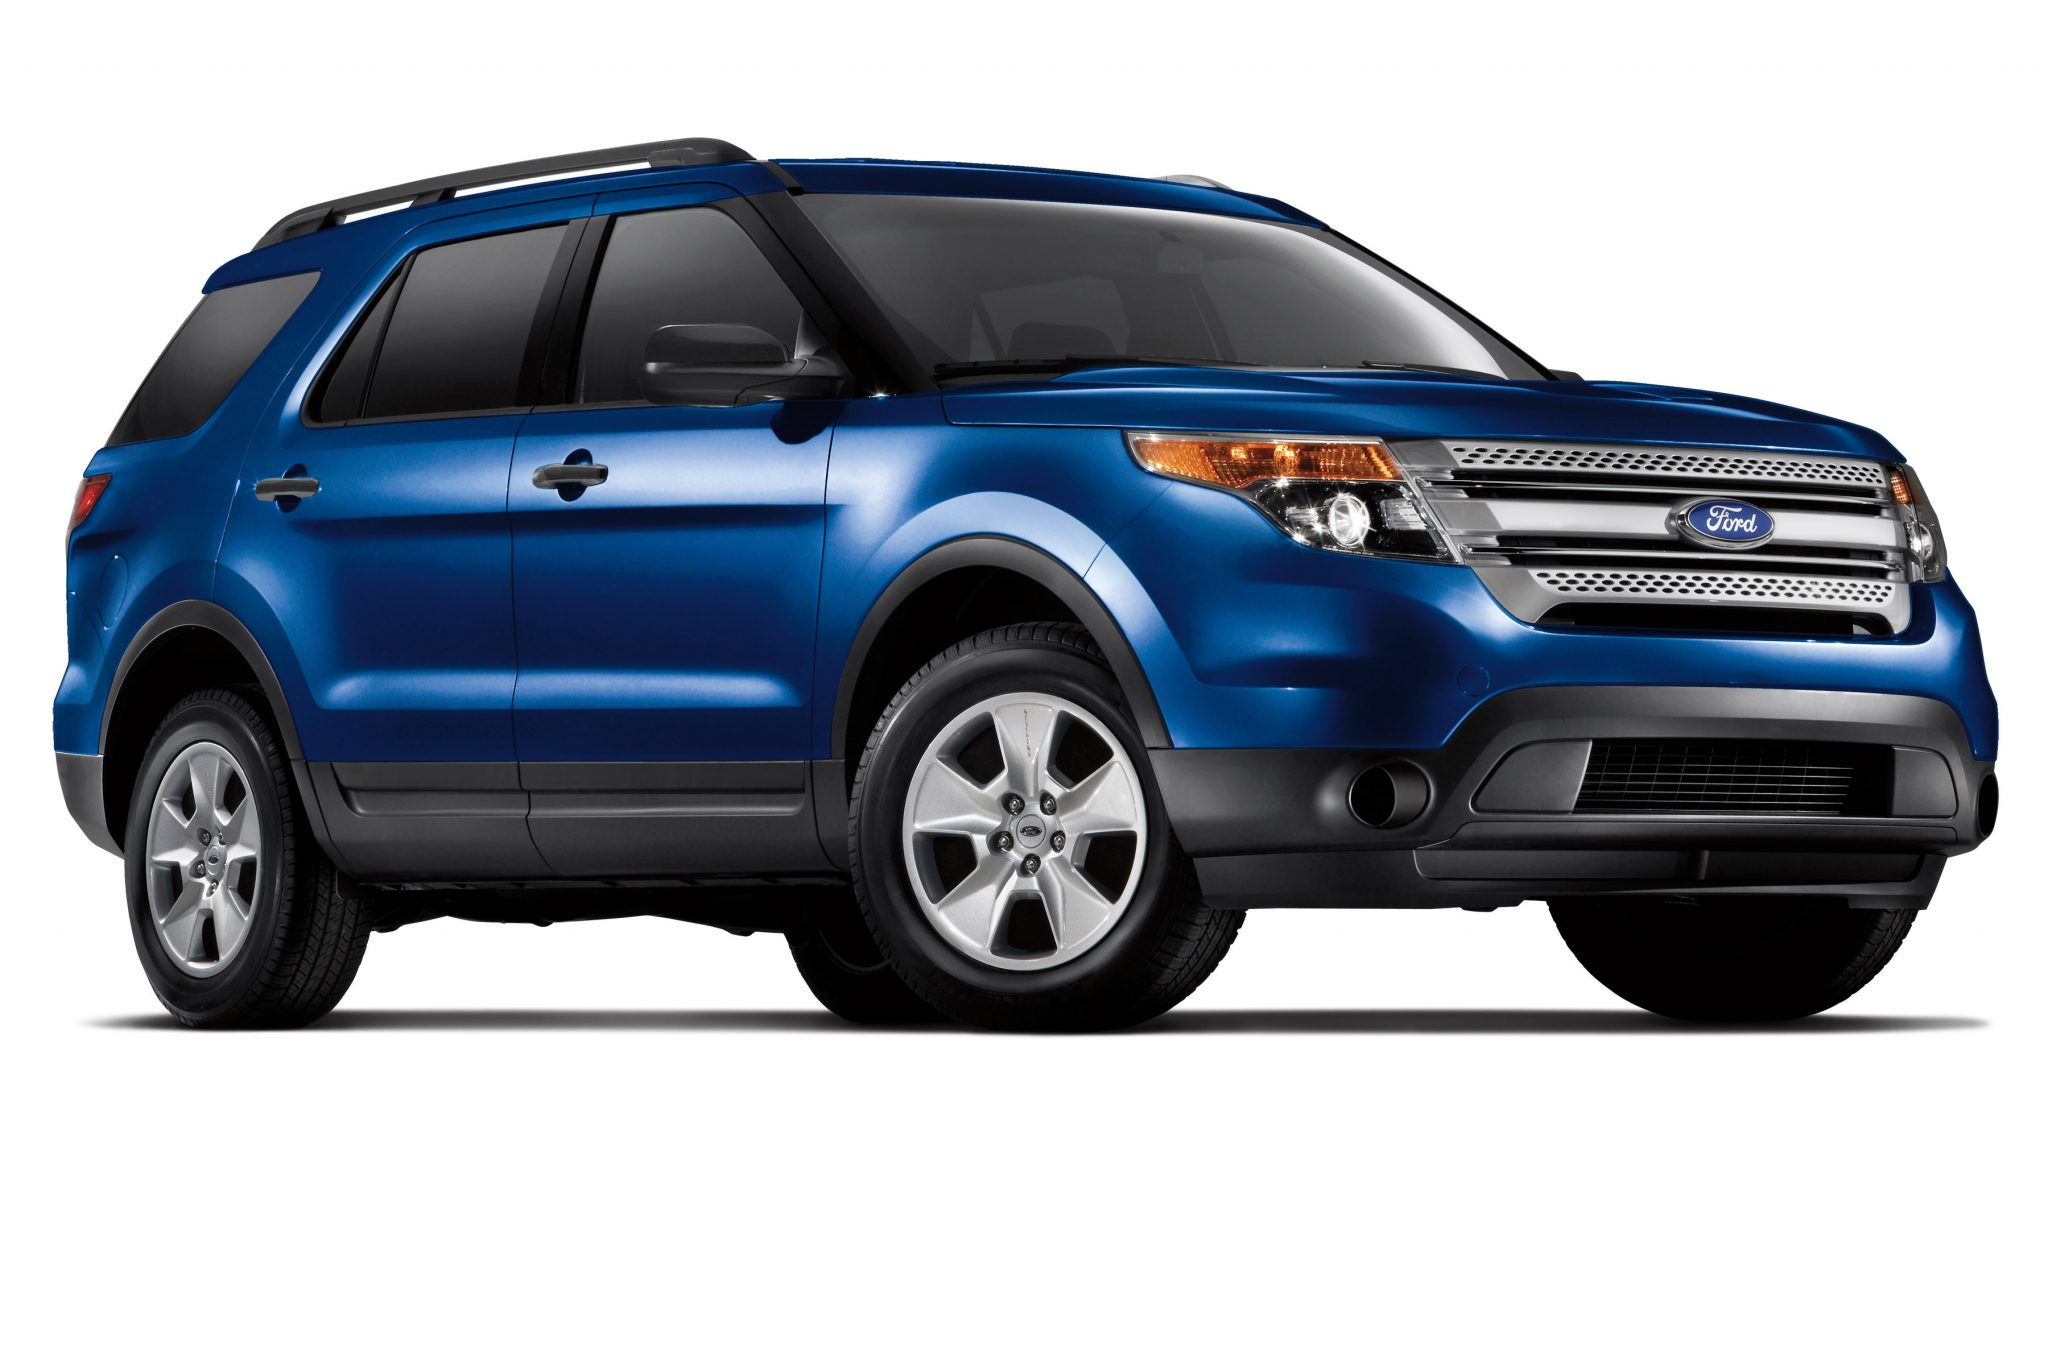 2013 Ford Explorer Overview